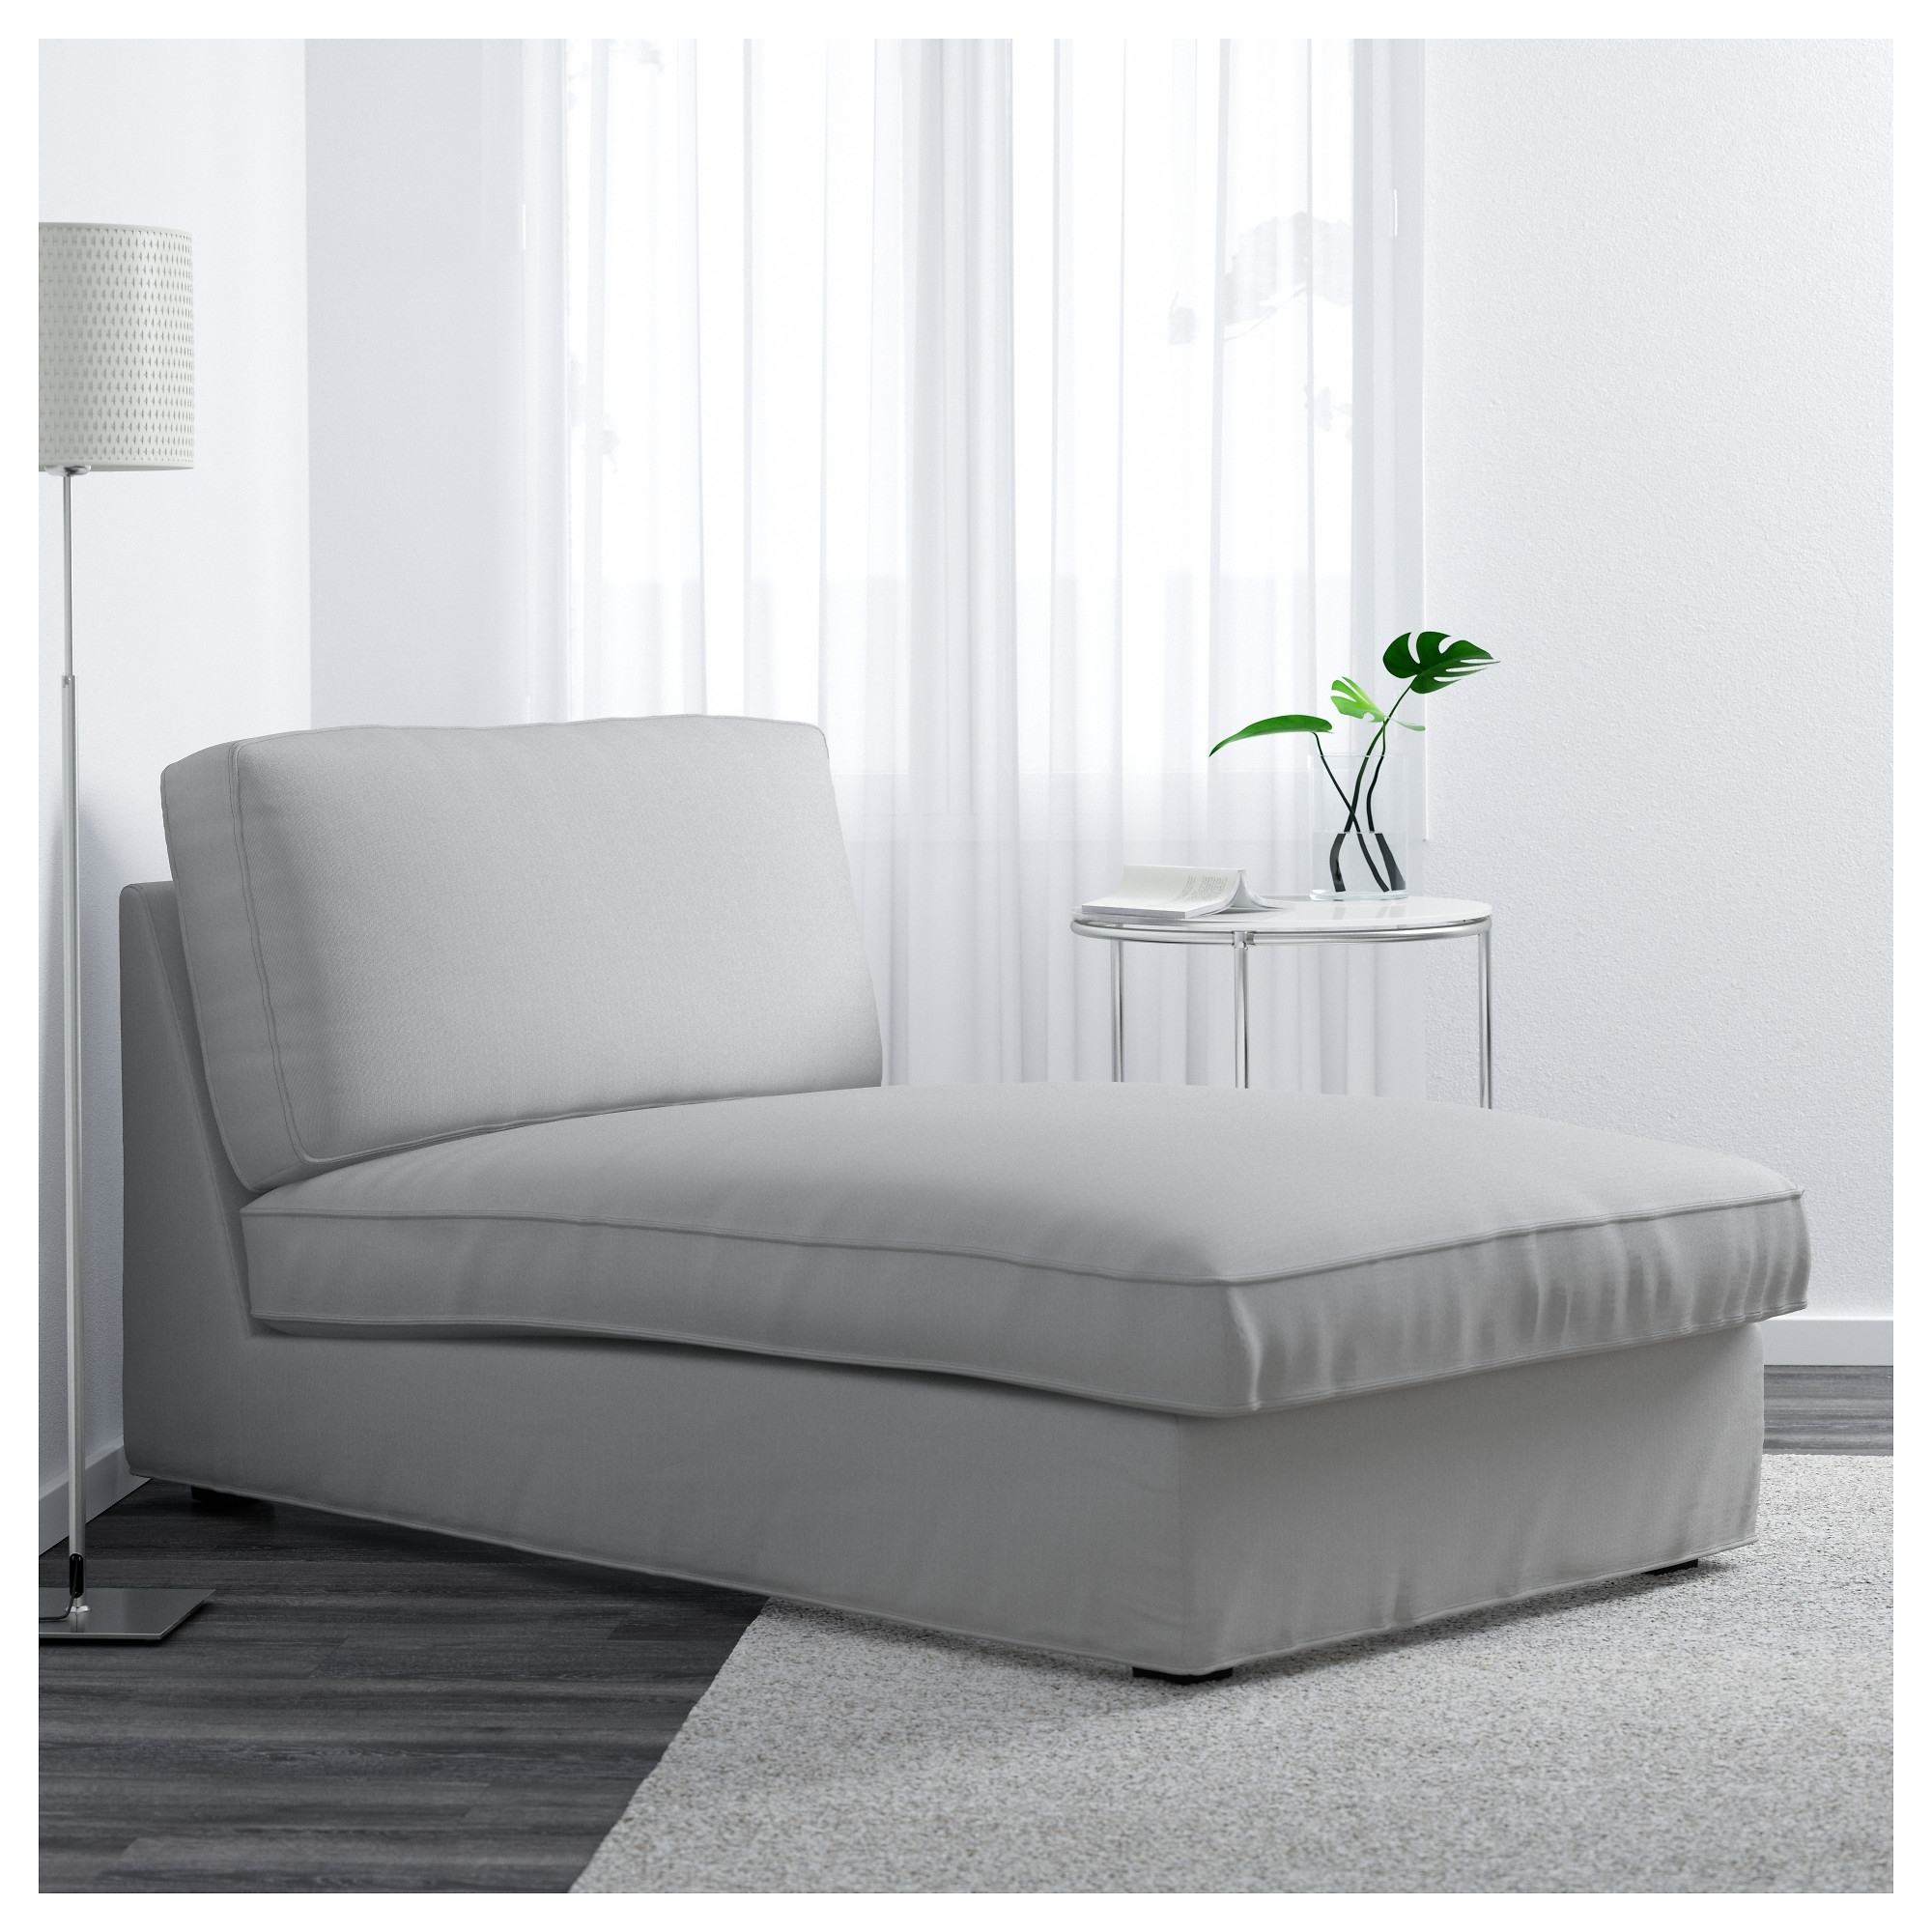 Newest Kivik Chaise Longue Ramna Light Grey – Ikea Intended For Kivik Chaises (View 11 of 15)